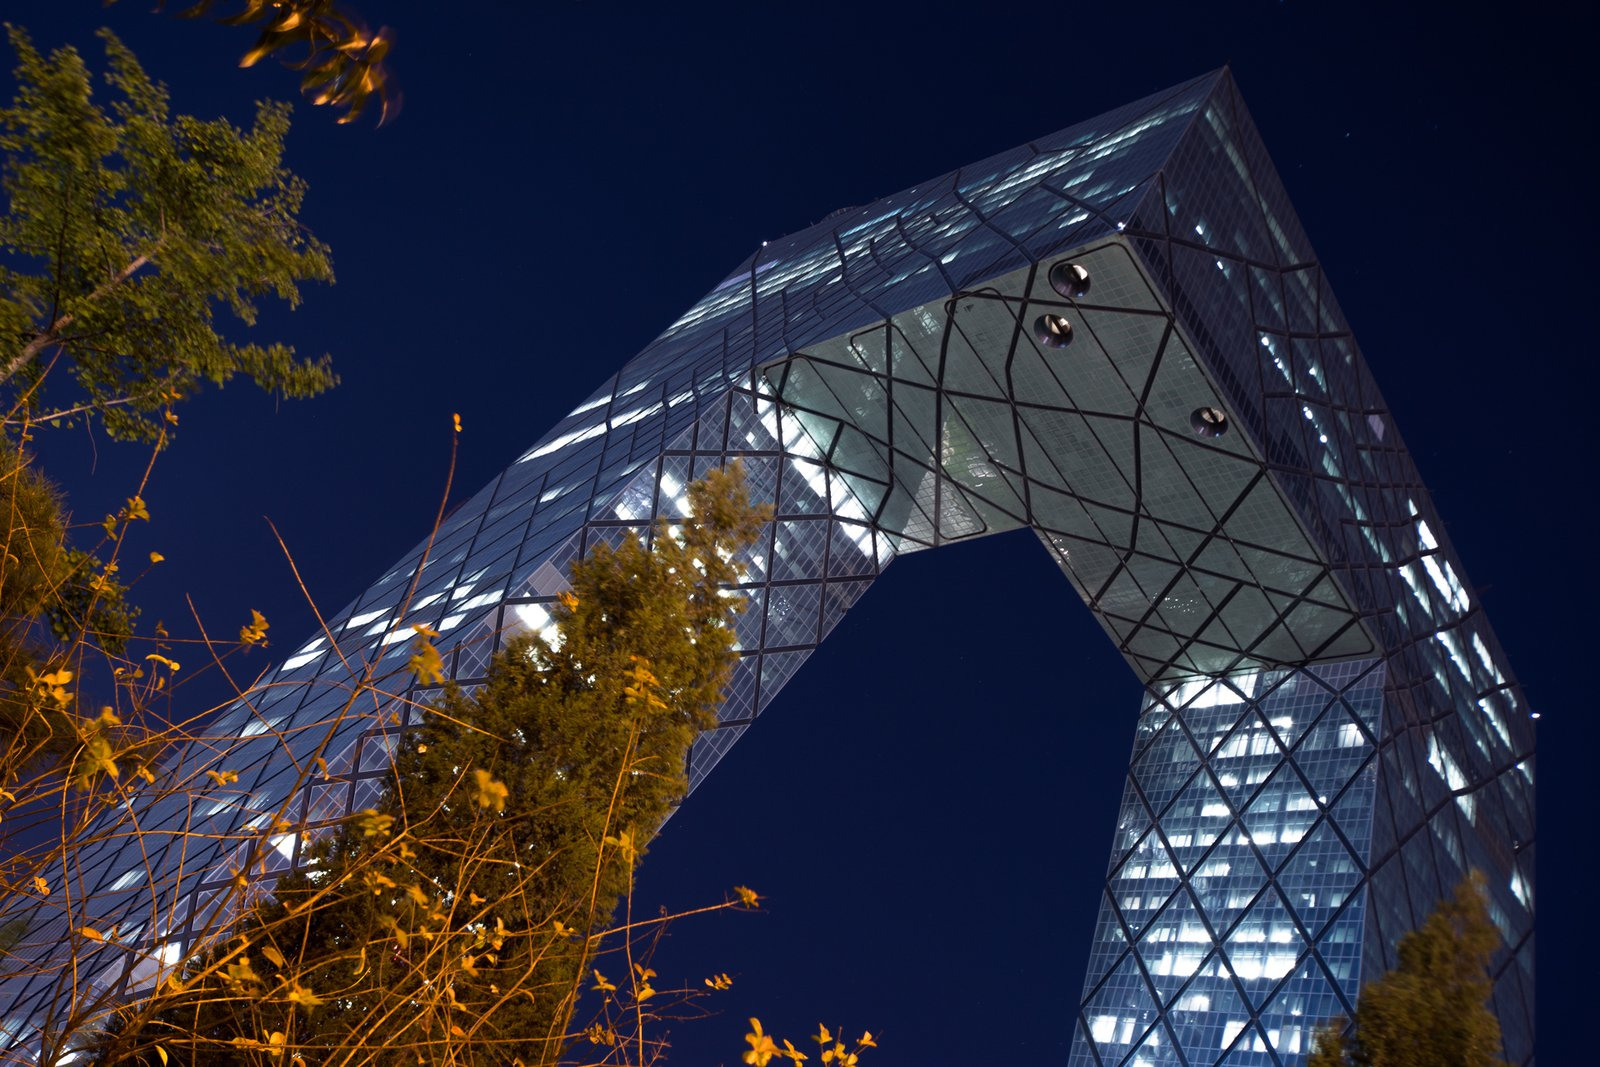 The CCTV tower designed by Dutch architect Rem Koolhaas was meant to be the headquarters for China Central Television when builders broke ground in 2004, but it was only over the past year that CCTV staff started moving into the building in significant numbers.